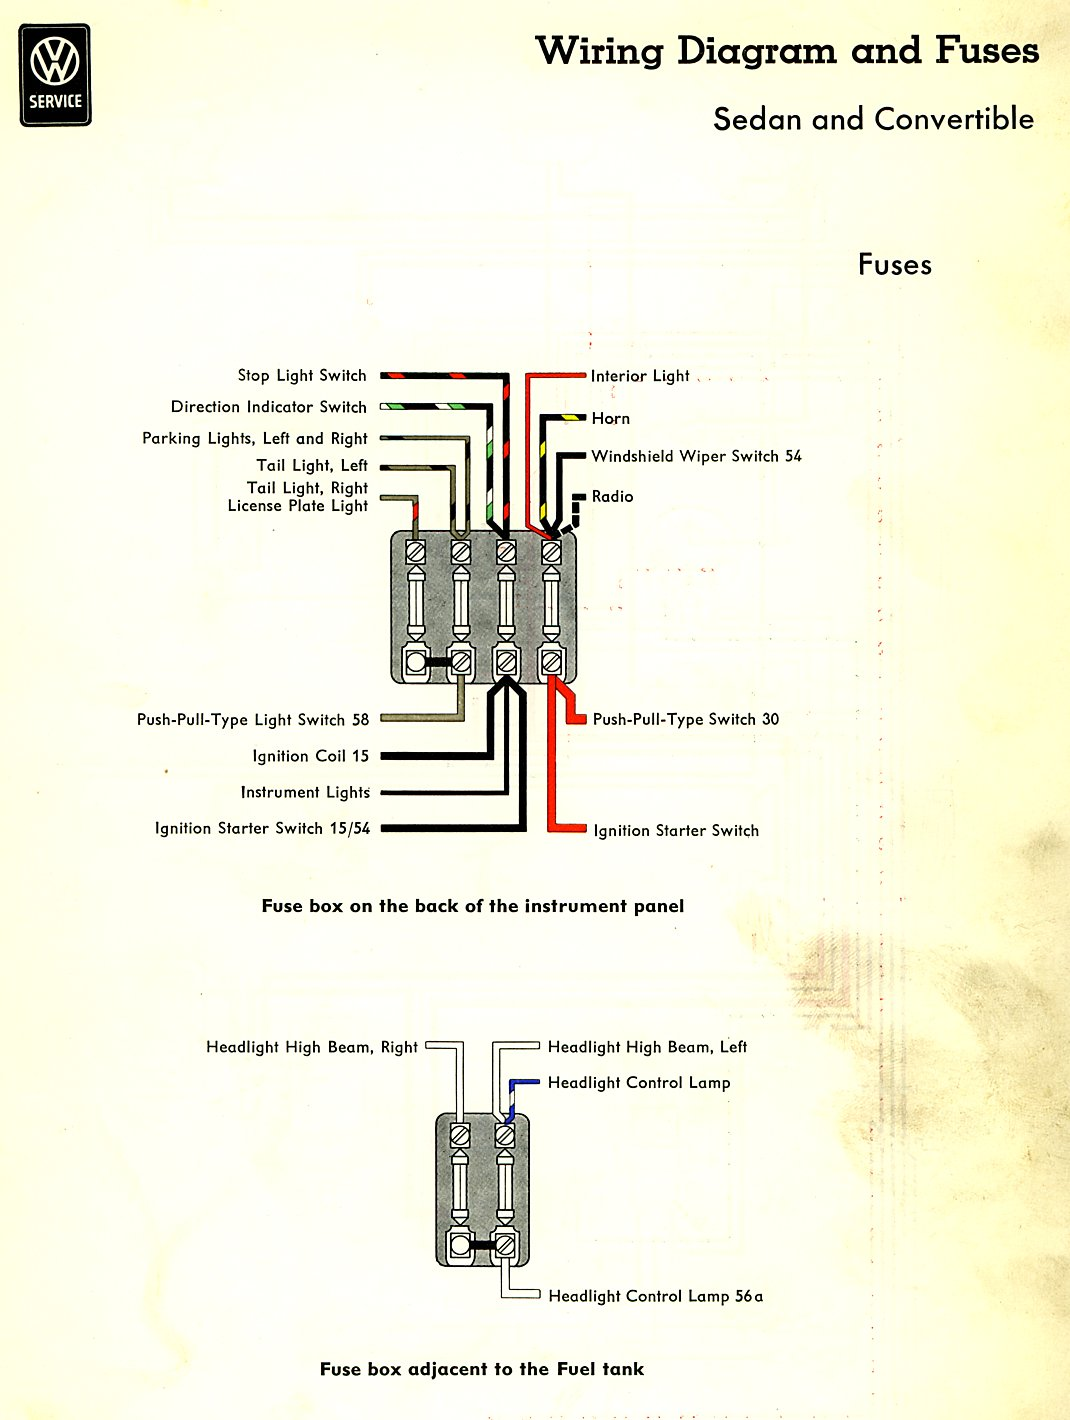 bug_58_fuses thesamba com type 1 wiring diagrams Turn Signal Flasher Wiring-Diagram at gsmx.co